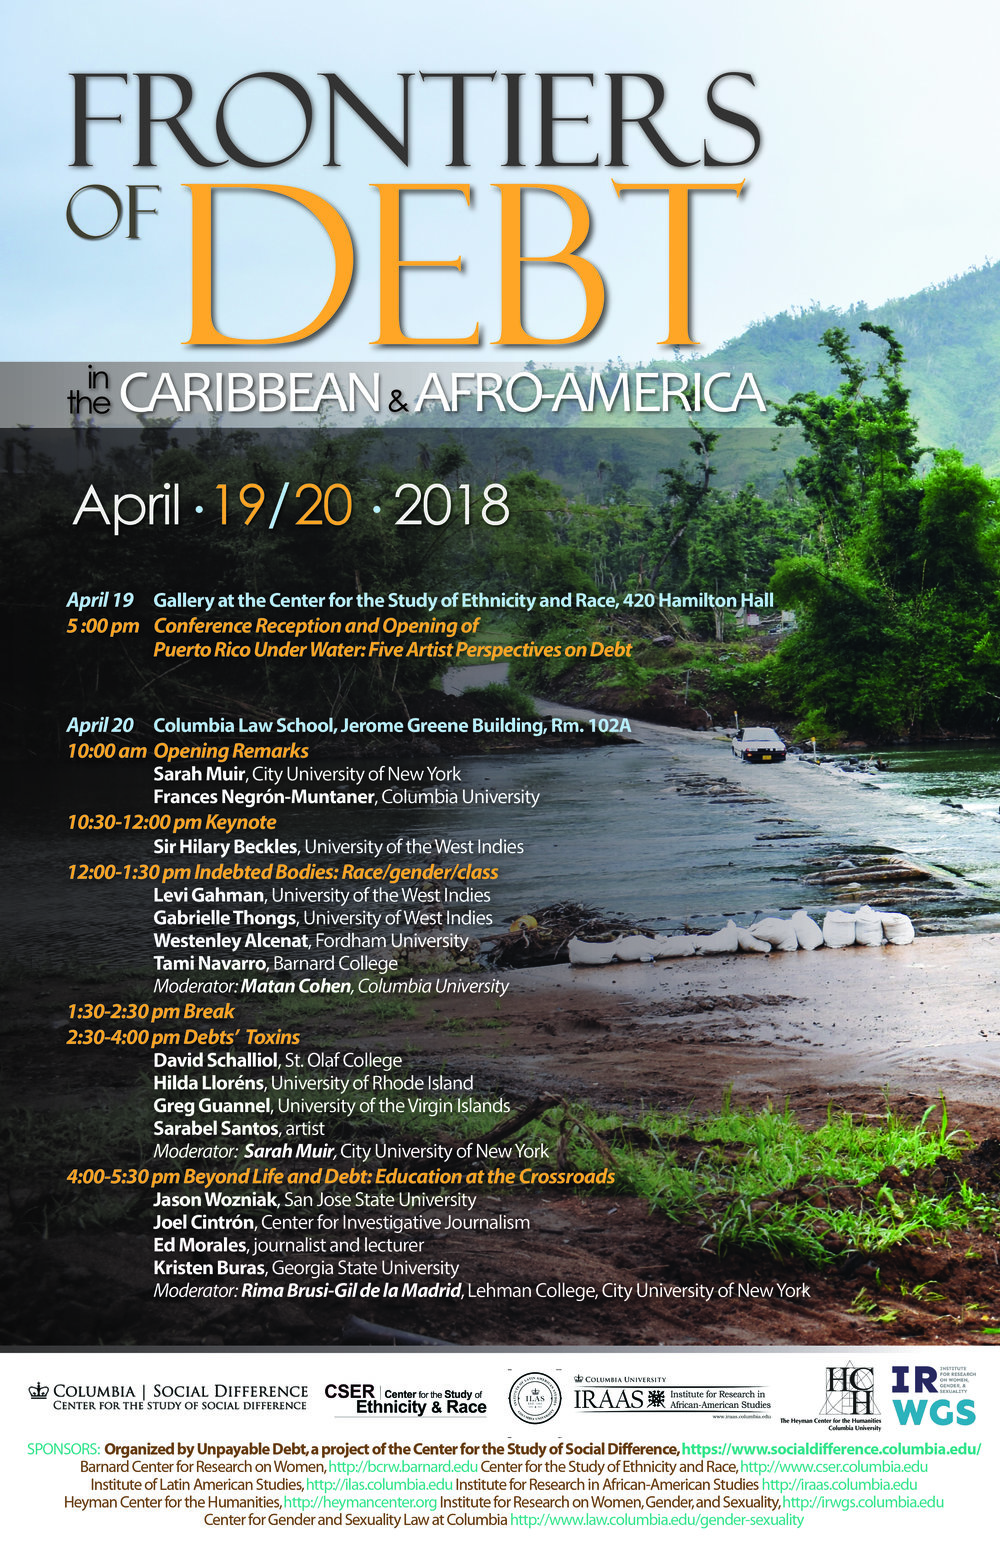 "FRONTIERS OF DEBT IN THE CARIBBEAN AND AFRO-AMERICA   Friday, April 20, 2018  Columbia Law School Room 102A Jerome Greene Hall New York, NY 10027  CSSD working group  Unpayable Debt: Capital, Violence, and the New Global Economy  presents Frontier of Debt in the Caribbean and Afro-America.   Frontiers of Debt in the Caribbean and Afro-America  brings together scholars, journalists, activists, and artists from across these two regions in order to interrogate their contemporary re-emergence as sites of new forms of capital extraction and opposition to debt regimes. The two-day event is comprised of an art exhibit and a conference. The art exhibit, entitled  Puerto Rico Under Water: Five Artist Perspectives on Debt  will be housed in the Gallery at the Columbia University Center for the Study of Ethnicity and Race ( 420 Hamilton Hal l) and will open with a reception at  5pm on April 19 . The conference itself will take place between  10am and 5:30pm on April 20  at the Columbia University Law School ( Jerome Green Building, Room 102 ).  The conference will consist of three panels, in addition to opening remarks by the organizers and a keynote address by Sir Hilary Beckles. The first panel is organized around the theme of ""Indebted Bodies"" and addresses questions of race, class, gender, and other forms of hierarchical difference, with a general focus on how different kinds of debt are folded into relations of intimacy, kinship, and everyday interactions. The afternoon panels include ""Debts' Toxins,"" which is focused on the relationship of indebtedness and the environment, and ""Beyond Life and Debt: Education at the Crossroads,"" which examines the emergence of debates and mobilizations around education, information, and communication in the context of debt crisis.    CONFERENCE PROGRAM:   April 19 -  Gallery at the Center for the Study of Ethnicity and Race, 420   Hamilton Hall  5pm: Conference Reception and Opening of  Puerto Rico Under Water: Five   Artist Perspectives on Debt  Works by: Adal Maldonado, Huáscar Robles, Sarabel Santos, Víctor Vázquez  April 20 -  Columbia Law School, Jerome Green Building, Room 102A   10am:  Opening Remarks  Sarah Muir (CUNY) Frances Negrón-Muntaner (Columbia University)  10:30am-12pm:  Keynote  Sir Hilary Beckles (University of the West Indies)  12-1:30pm:  Indebted Bodies  Levi Gahman (University of the West Indies) Gabrielle Thongs (University of the West Indies) Westenley Alcenat (Fordham University) Tami Navarro (Barnard College) Moderator: Matan Cohen (Columbia University)  1:30-2:30pm:  Break   2:30-4pm:  Debts' Toxins  David Schalliol (St. Olaf College) Hilda Lloréns (University of Rhode Island) Greg Guannel (University of the Virgin Islands) Sarabel Santos (independent artist) Moderator: Sarah Muir (CUNY)  4-5:30pm:  Beyond Life and Debt: Education at the Crossroads  Jason Wozniak (San José University) Joel Cintrón Arbasetti (Centro de Periodismo Investigativo) Ed Morales (independent journalist and lecturer) Kristen Buras (Georgia State University) Moderator: Rima Brusi-Gil de la Madrid (Lehman College)"